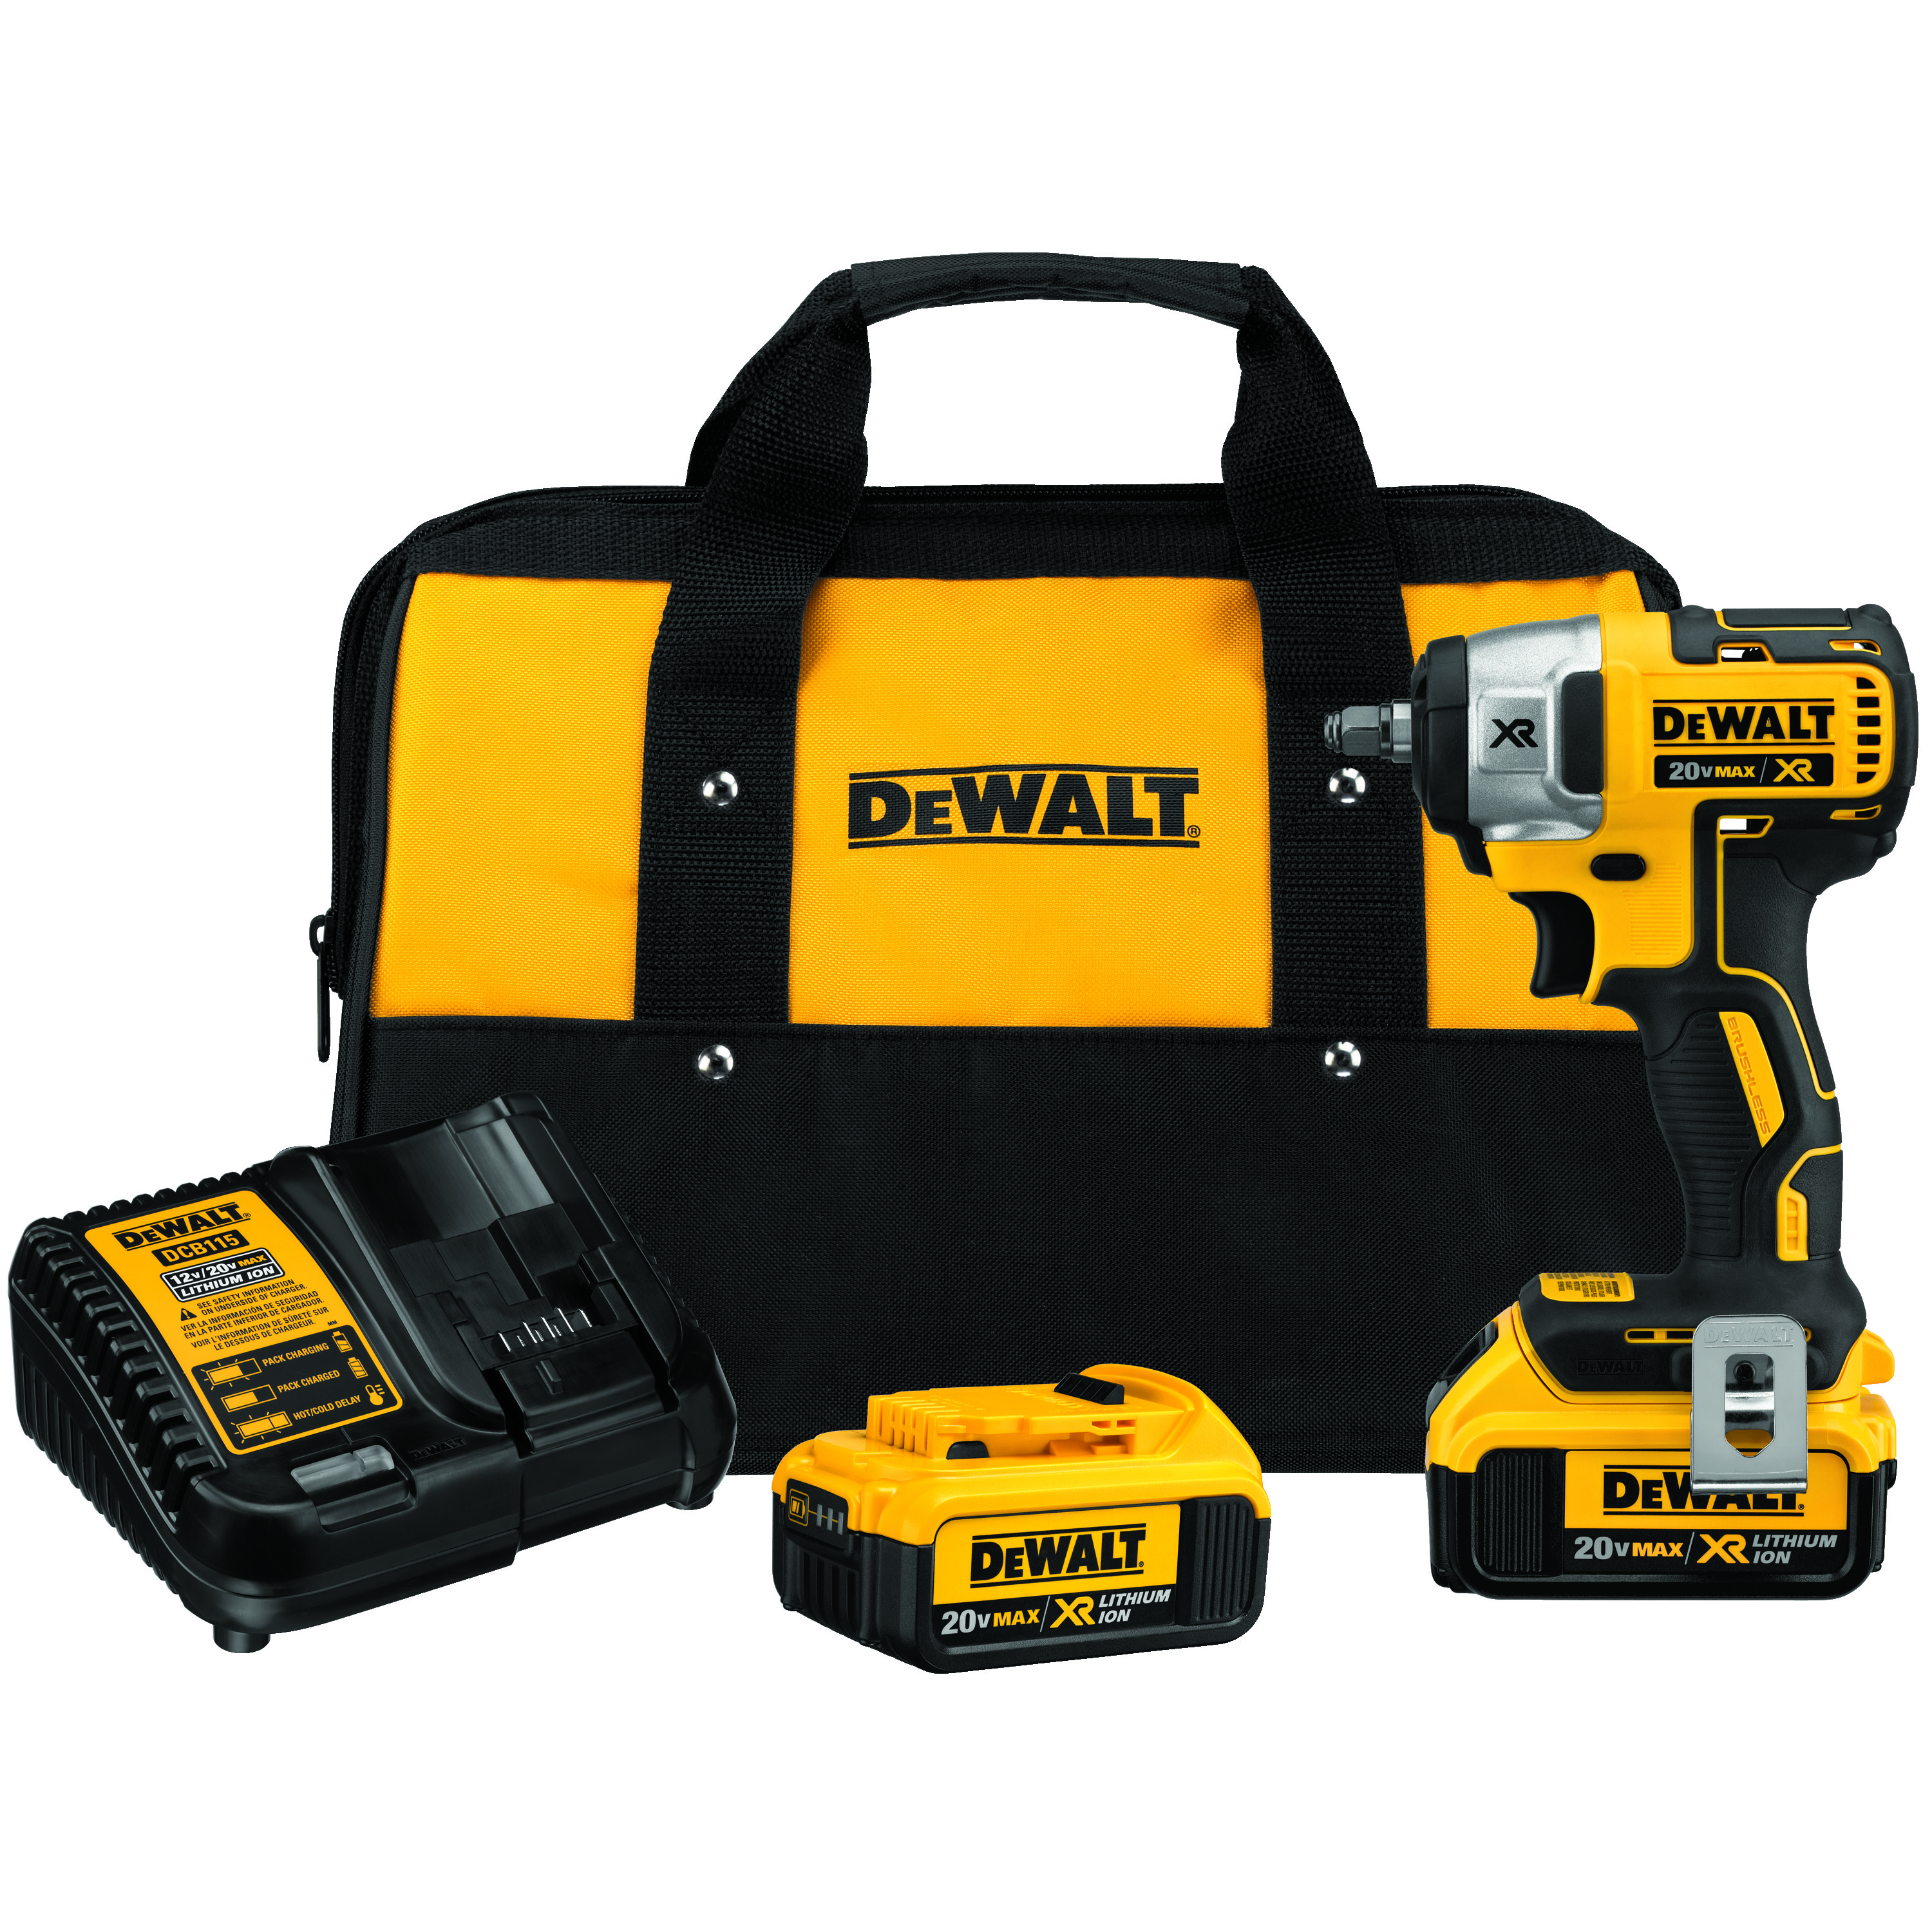 DeWALT® 20V MAX* MATRIX™ XR™ DCF890M2 Cordless Impact Wrench, 3/8 in Straight Drive, 2700 bpm, 150 ft-lb Torque, 20 V, 5-1/2 in OAL, Tool Only